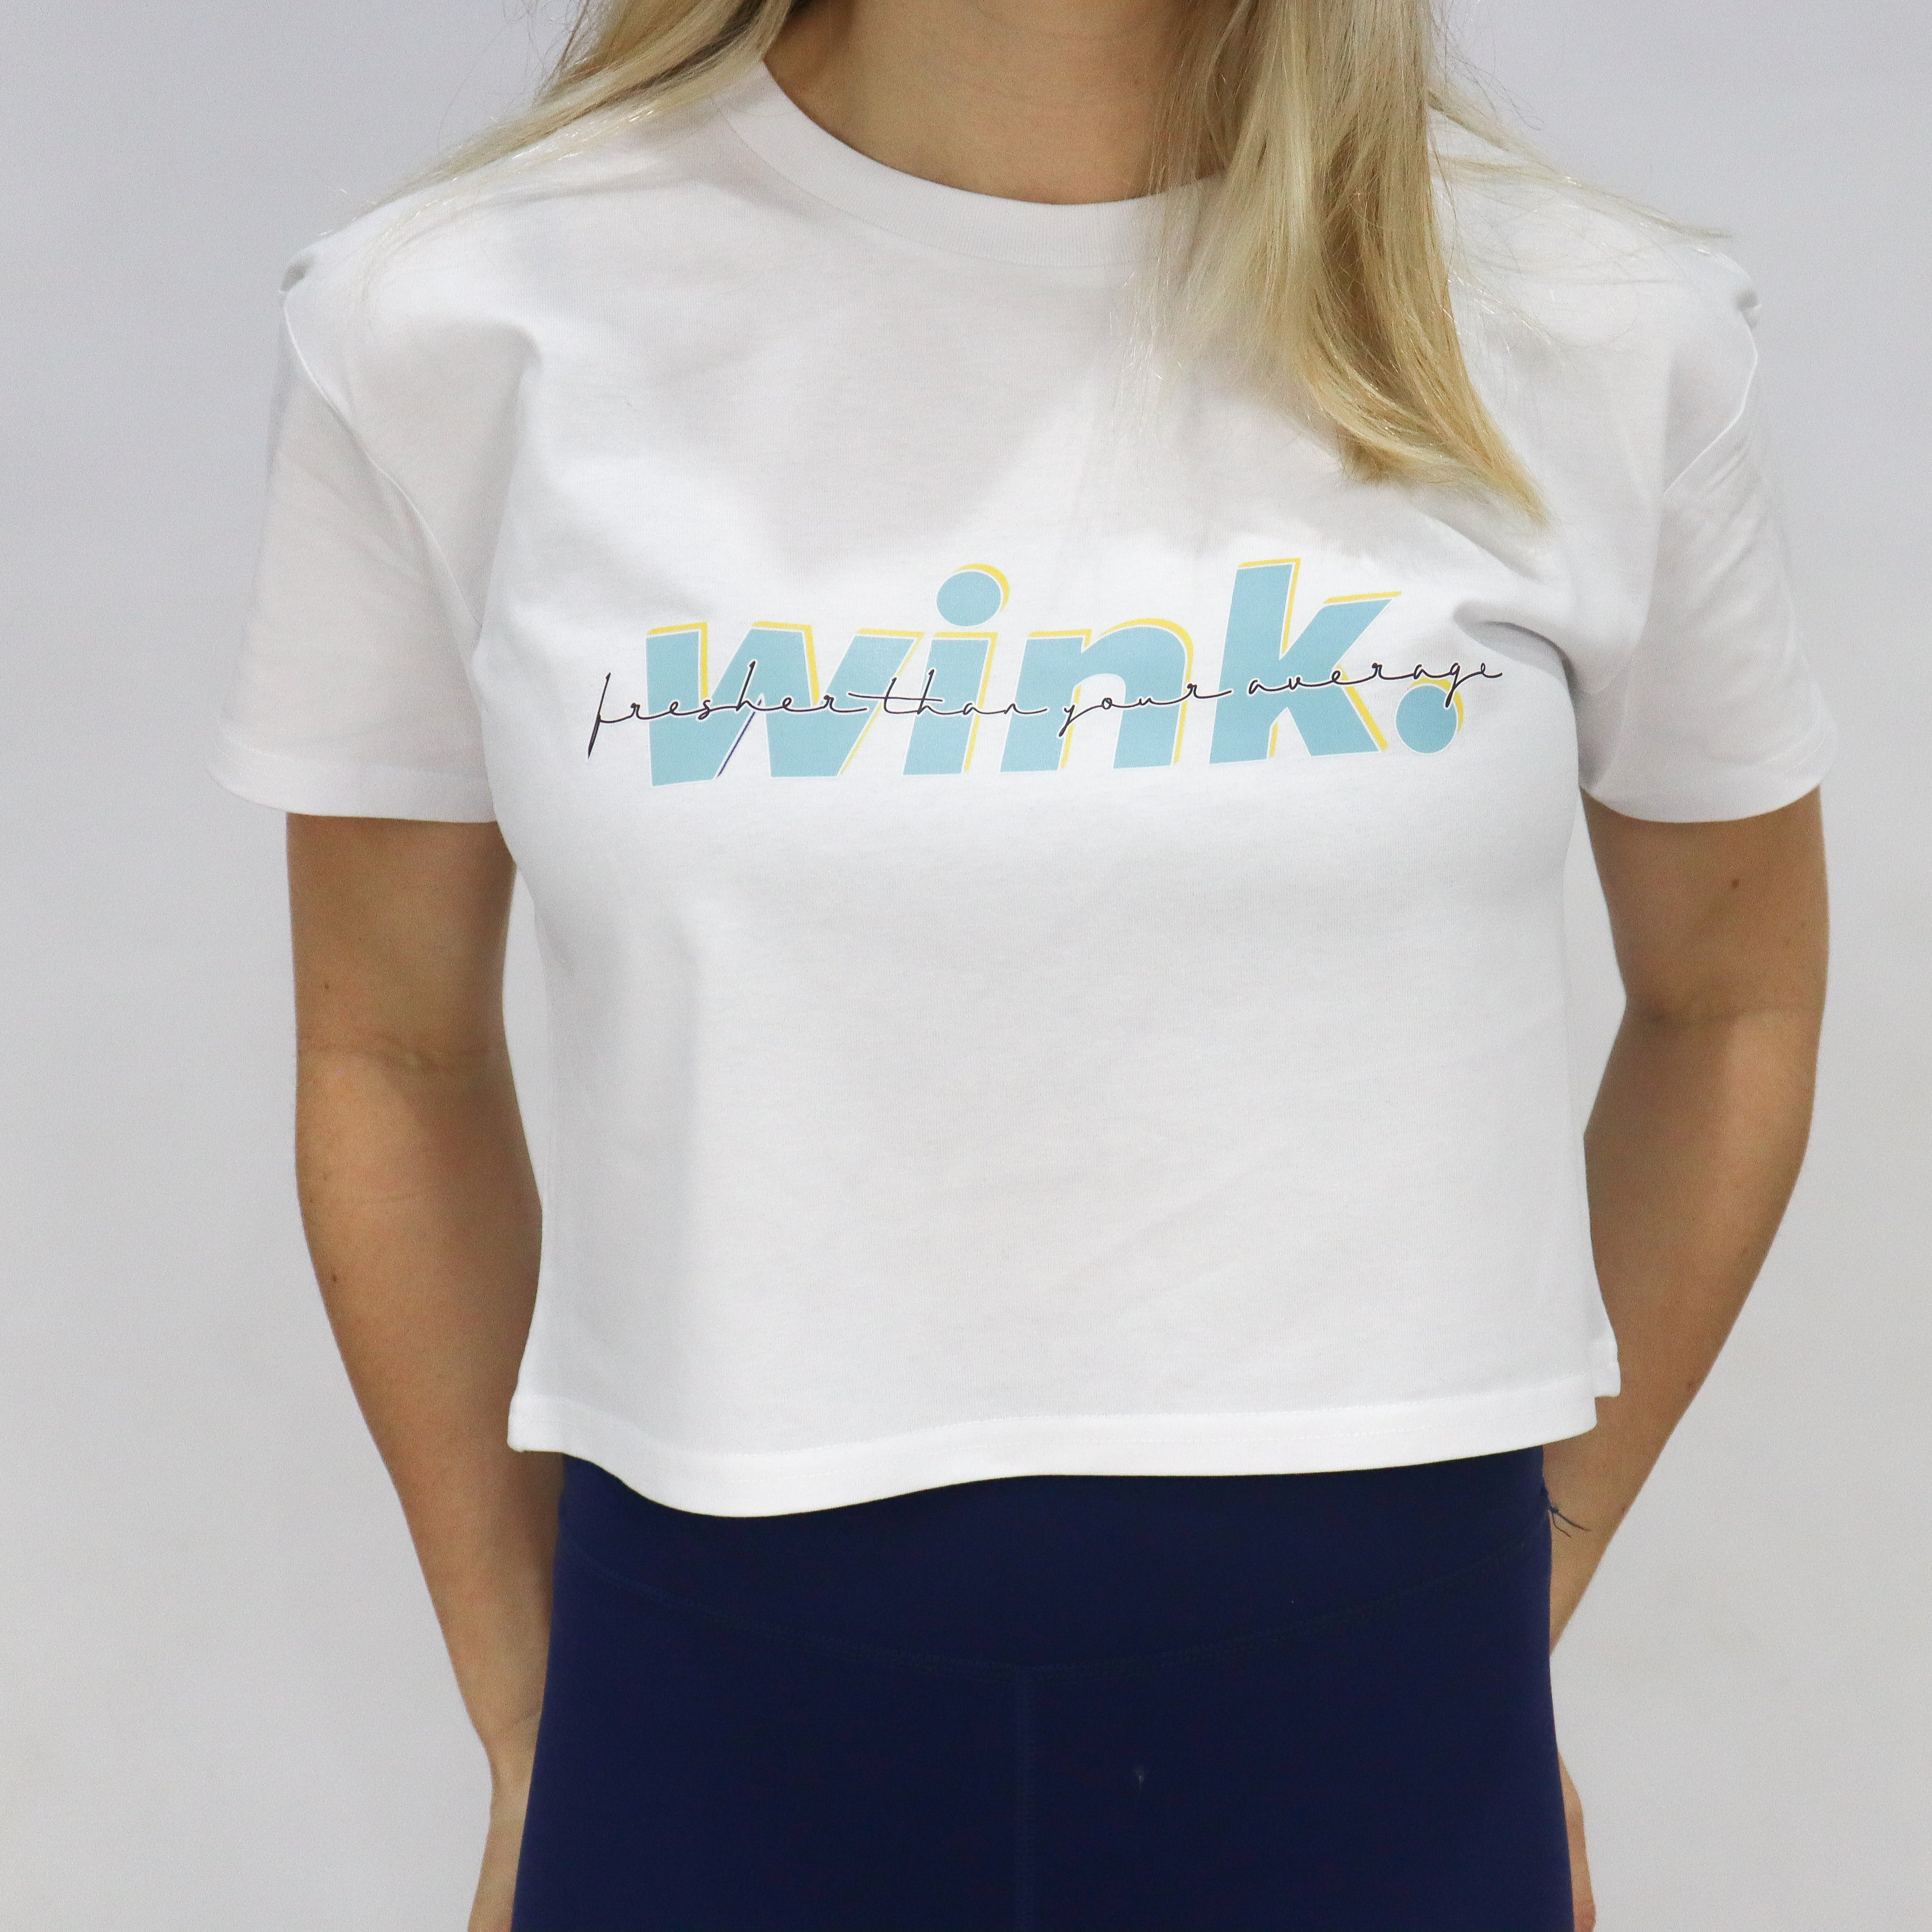 Lucia Cropped Tee - Miami White